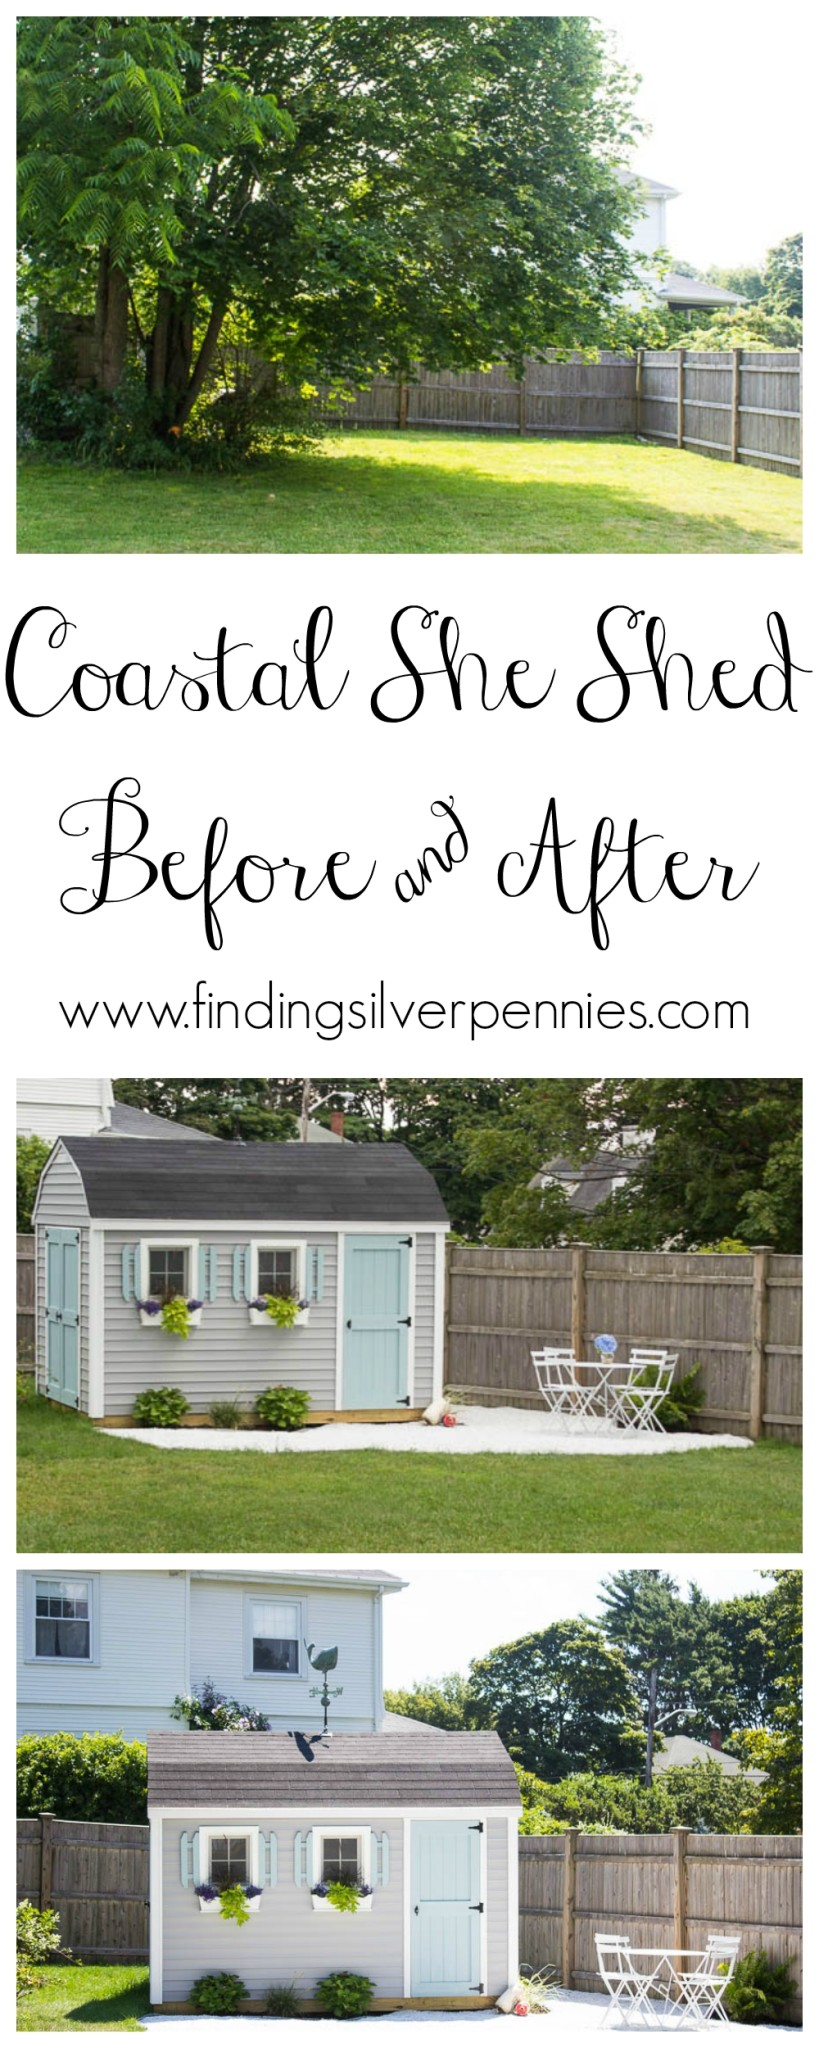 Coastal She Shed Before and After Exterior